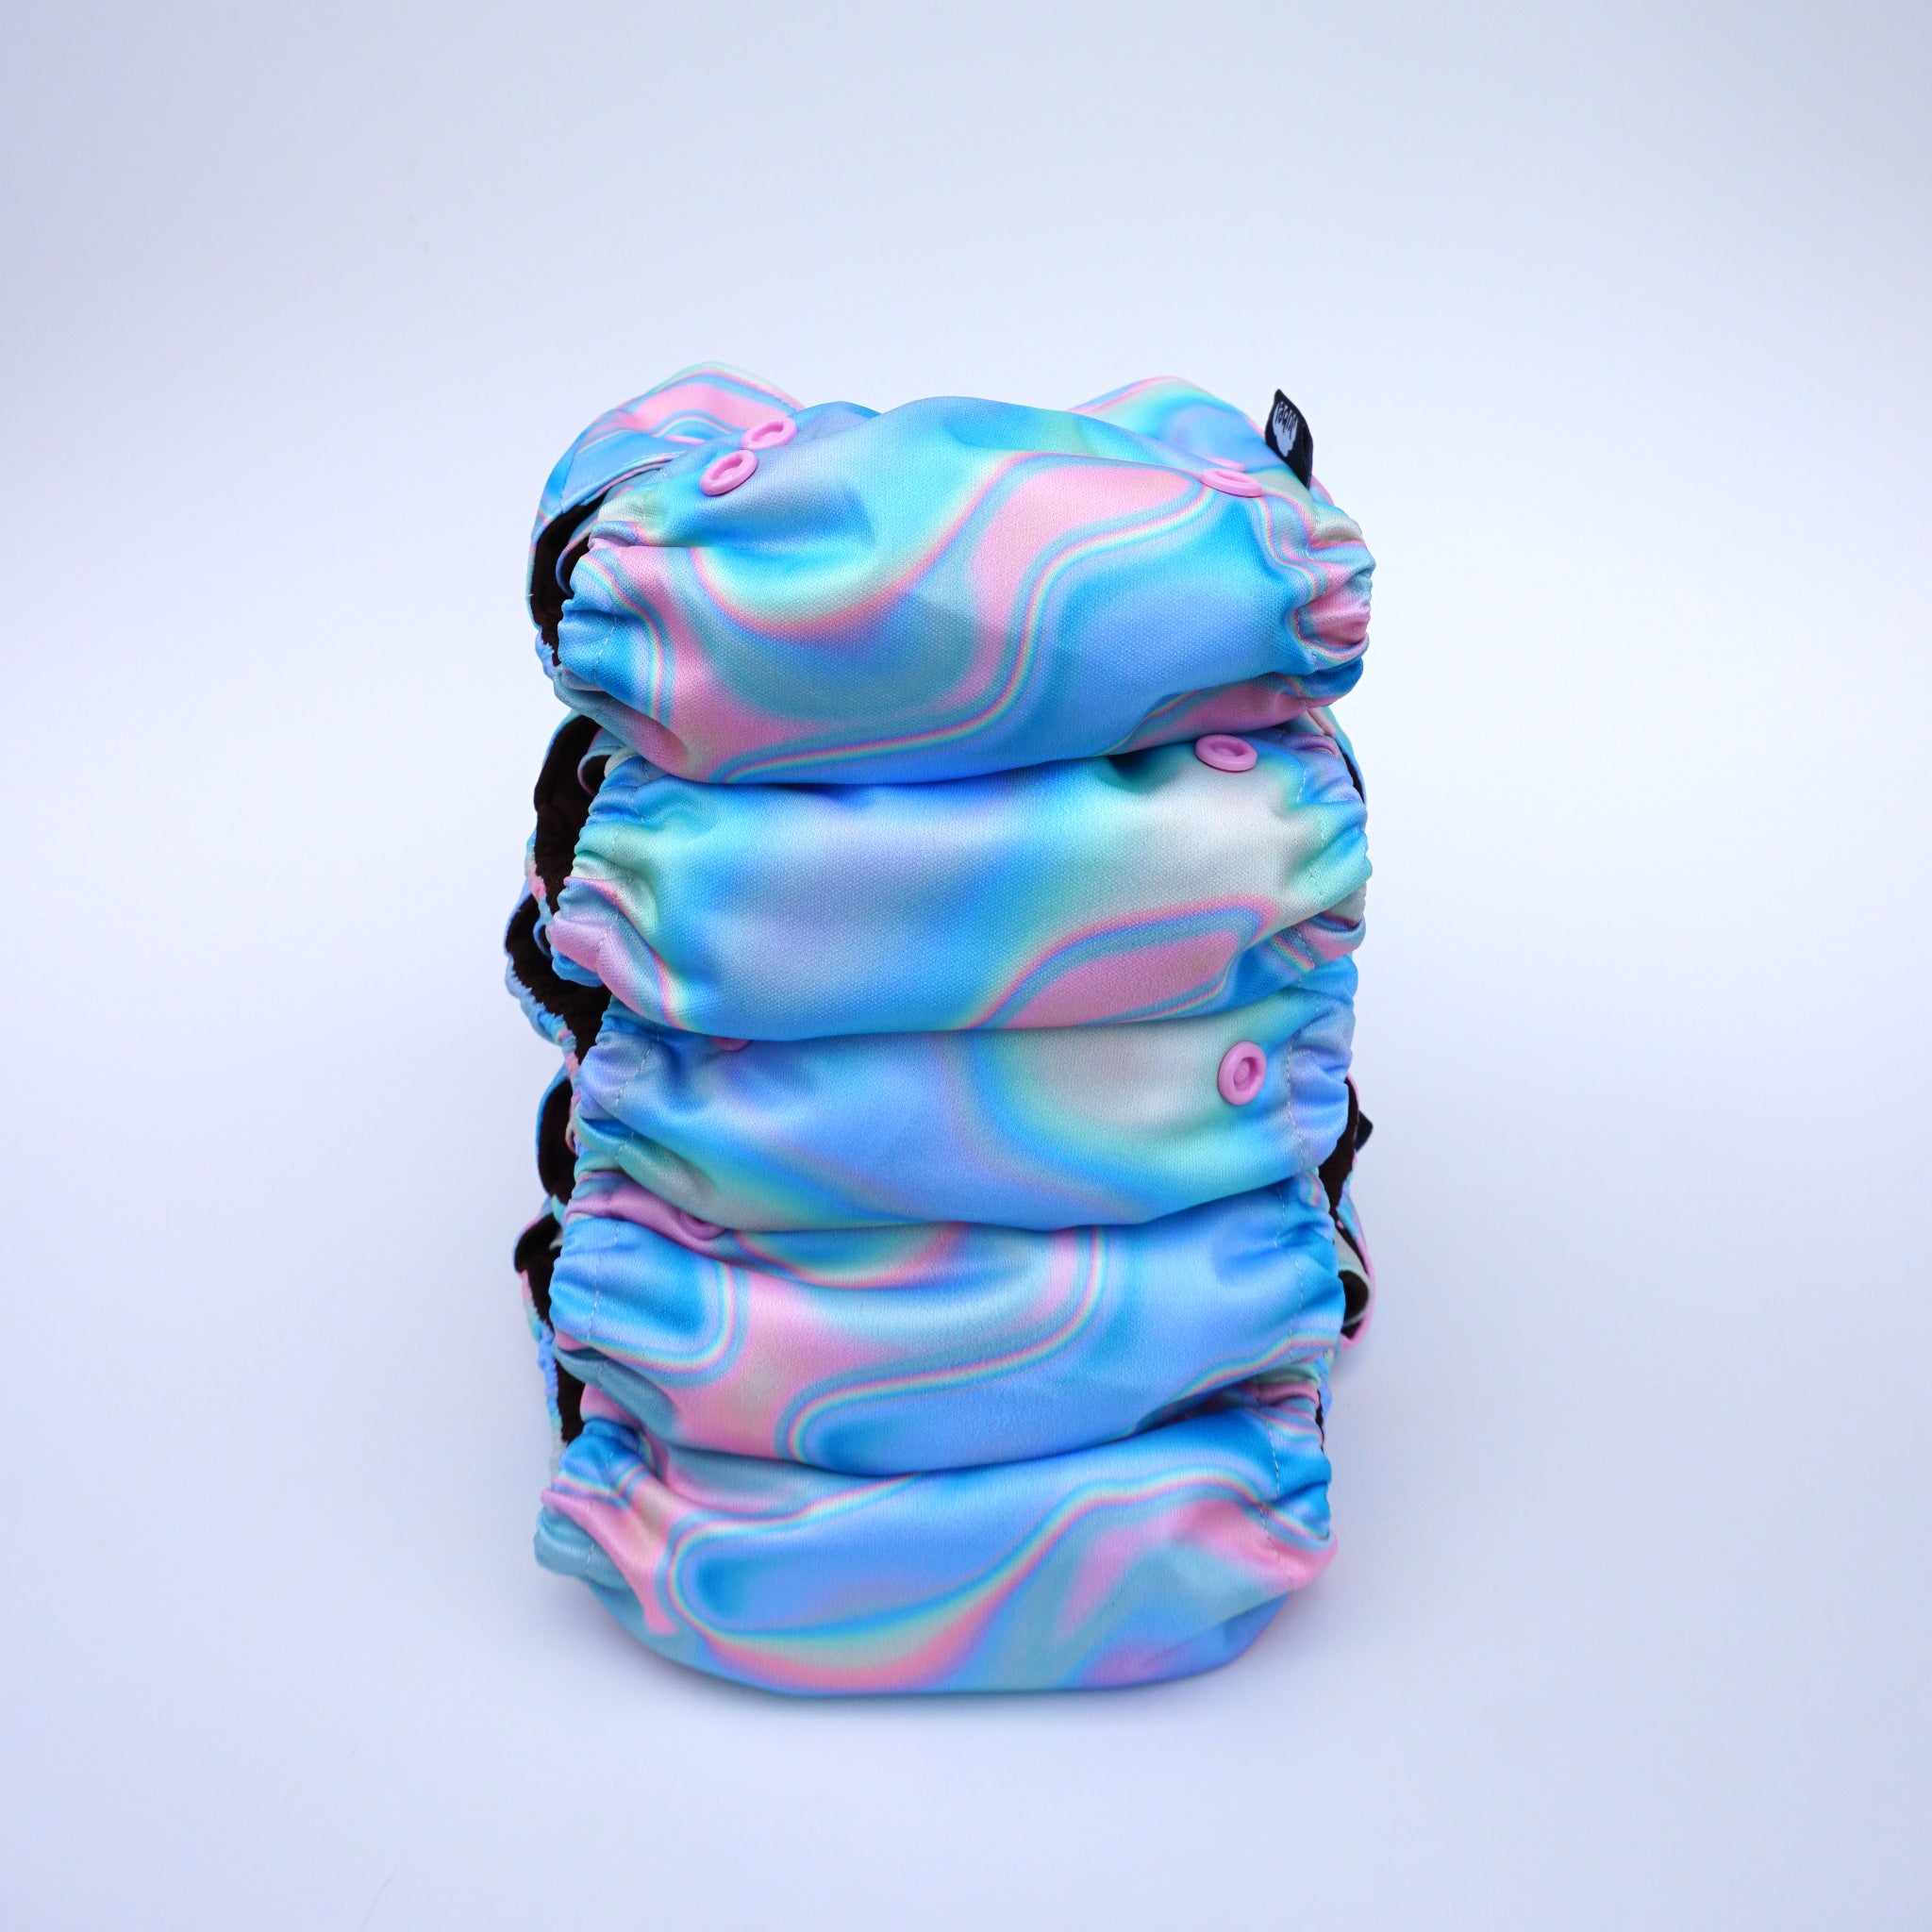 JUBEL Classic reusable nappy colour SÜSSES stack of 5 nappies